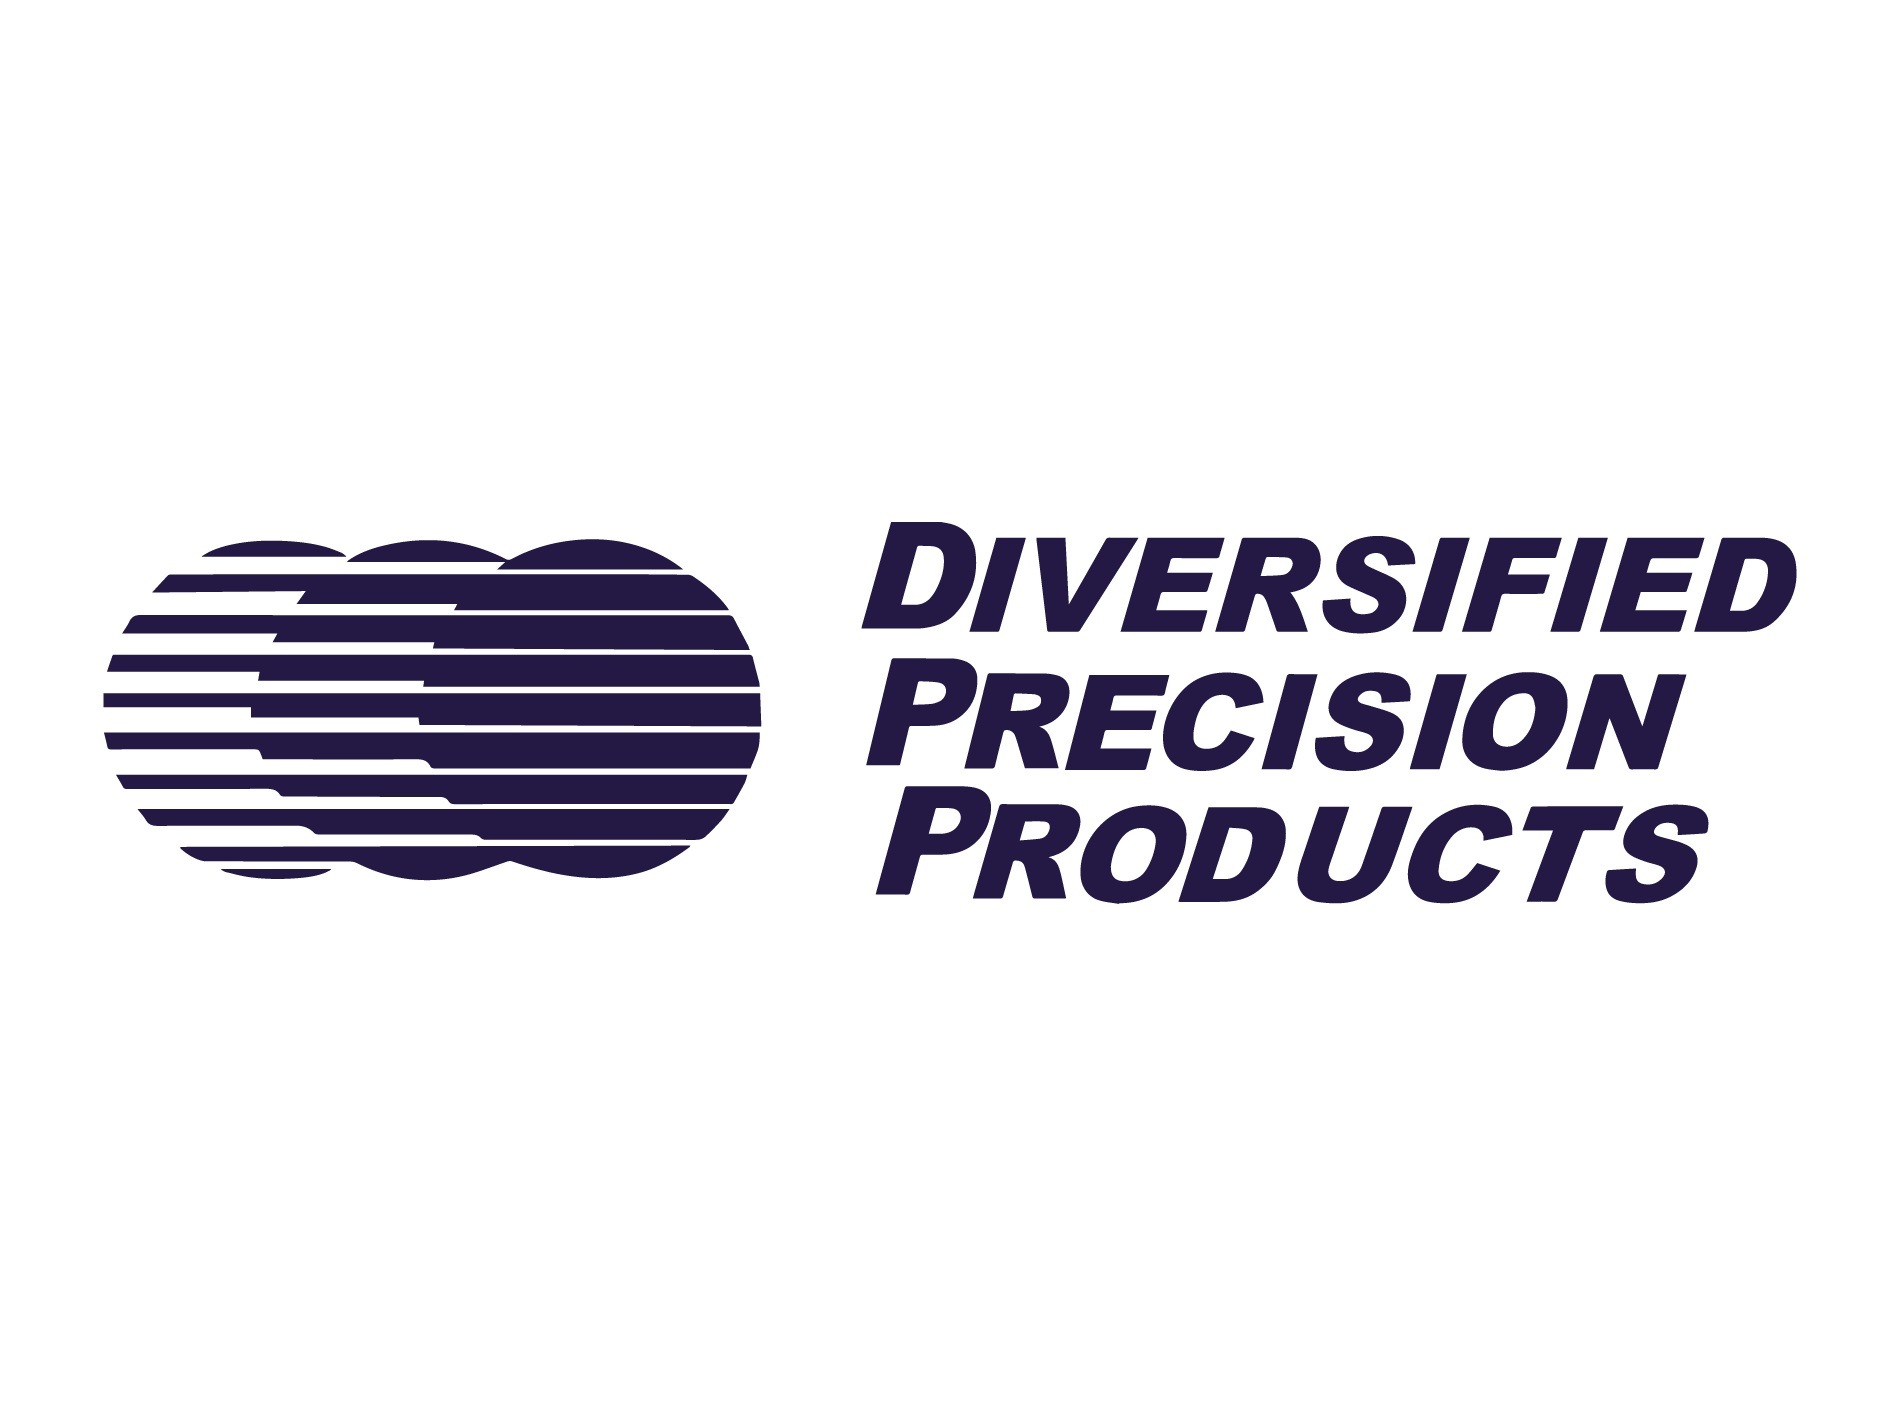 Diversified Precision Products